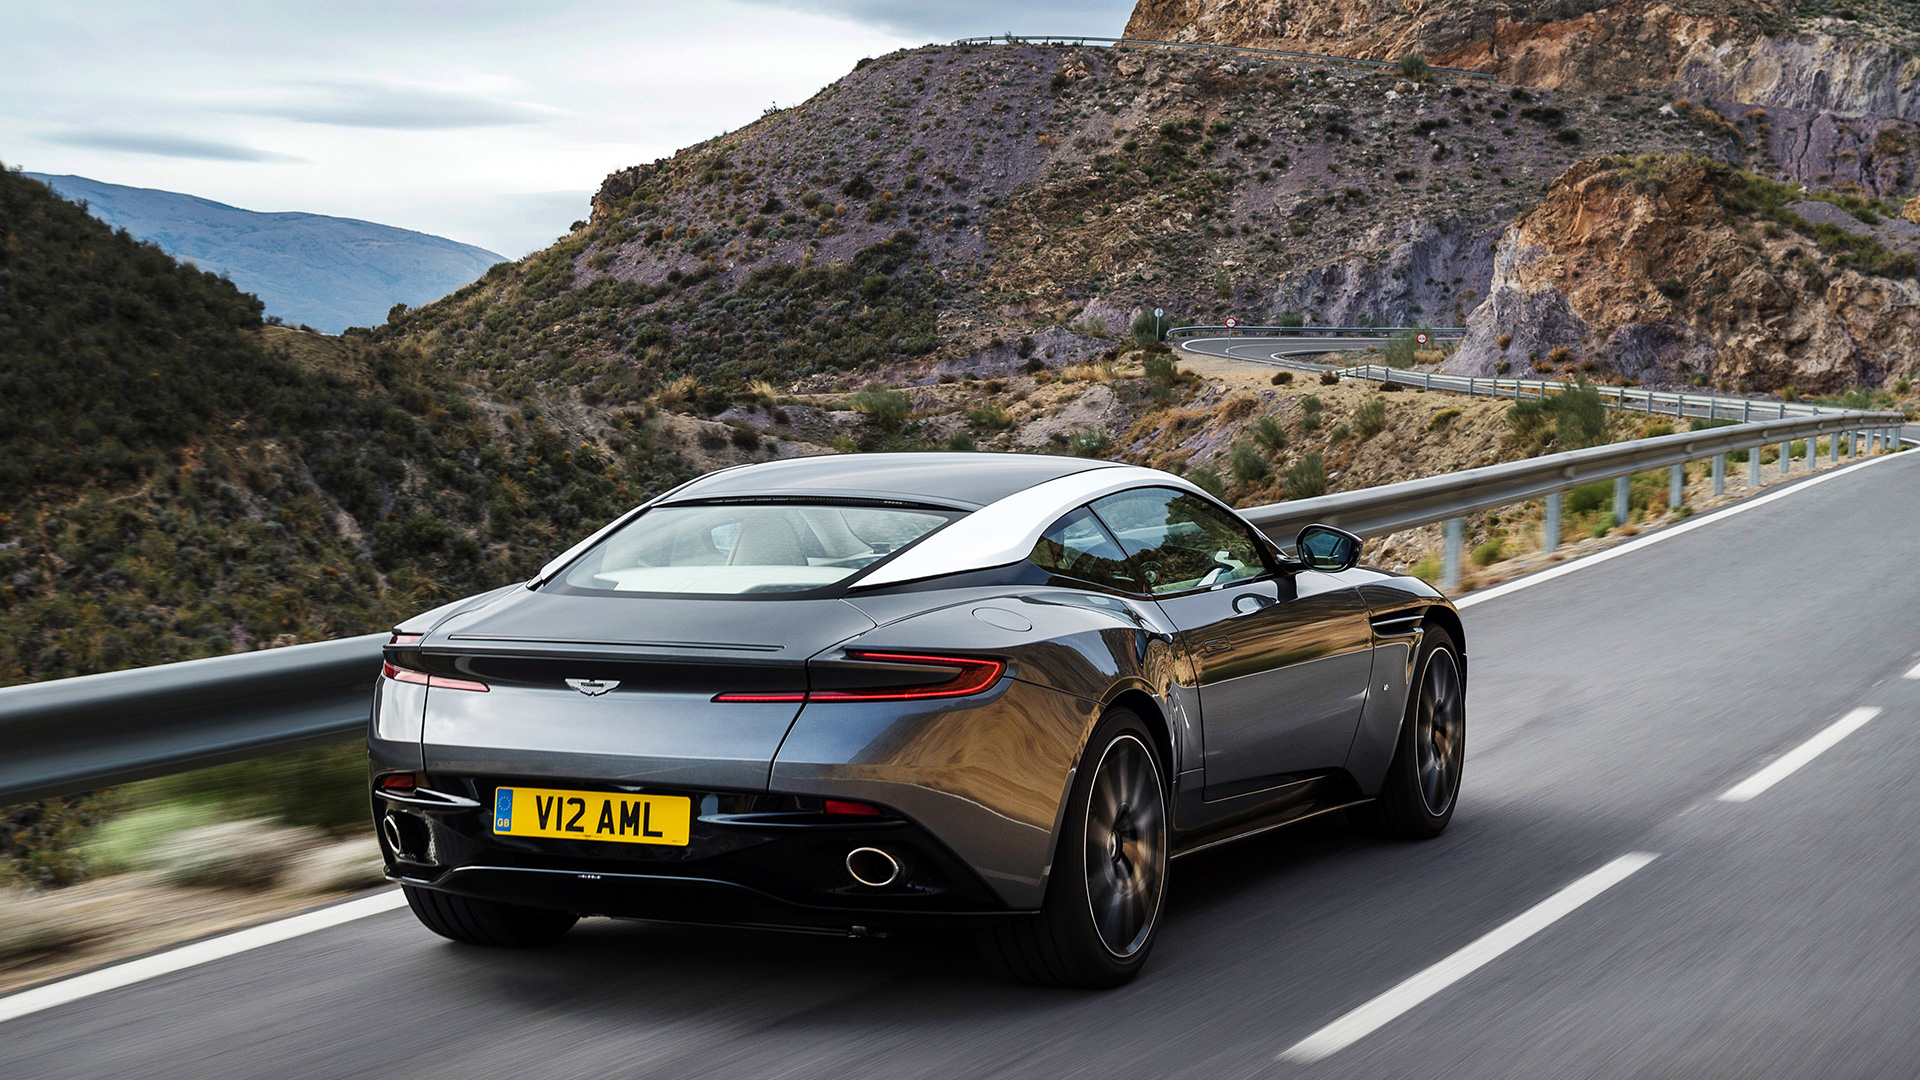 aston martin db11 2016 - price, mileage, reviews, specification